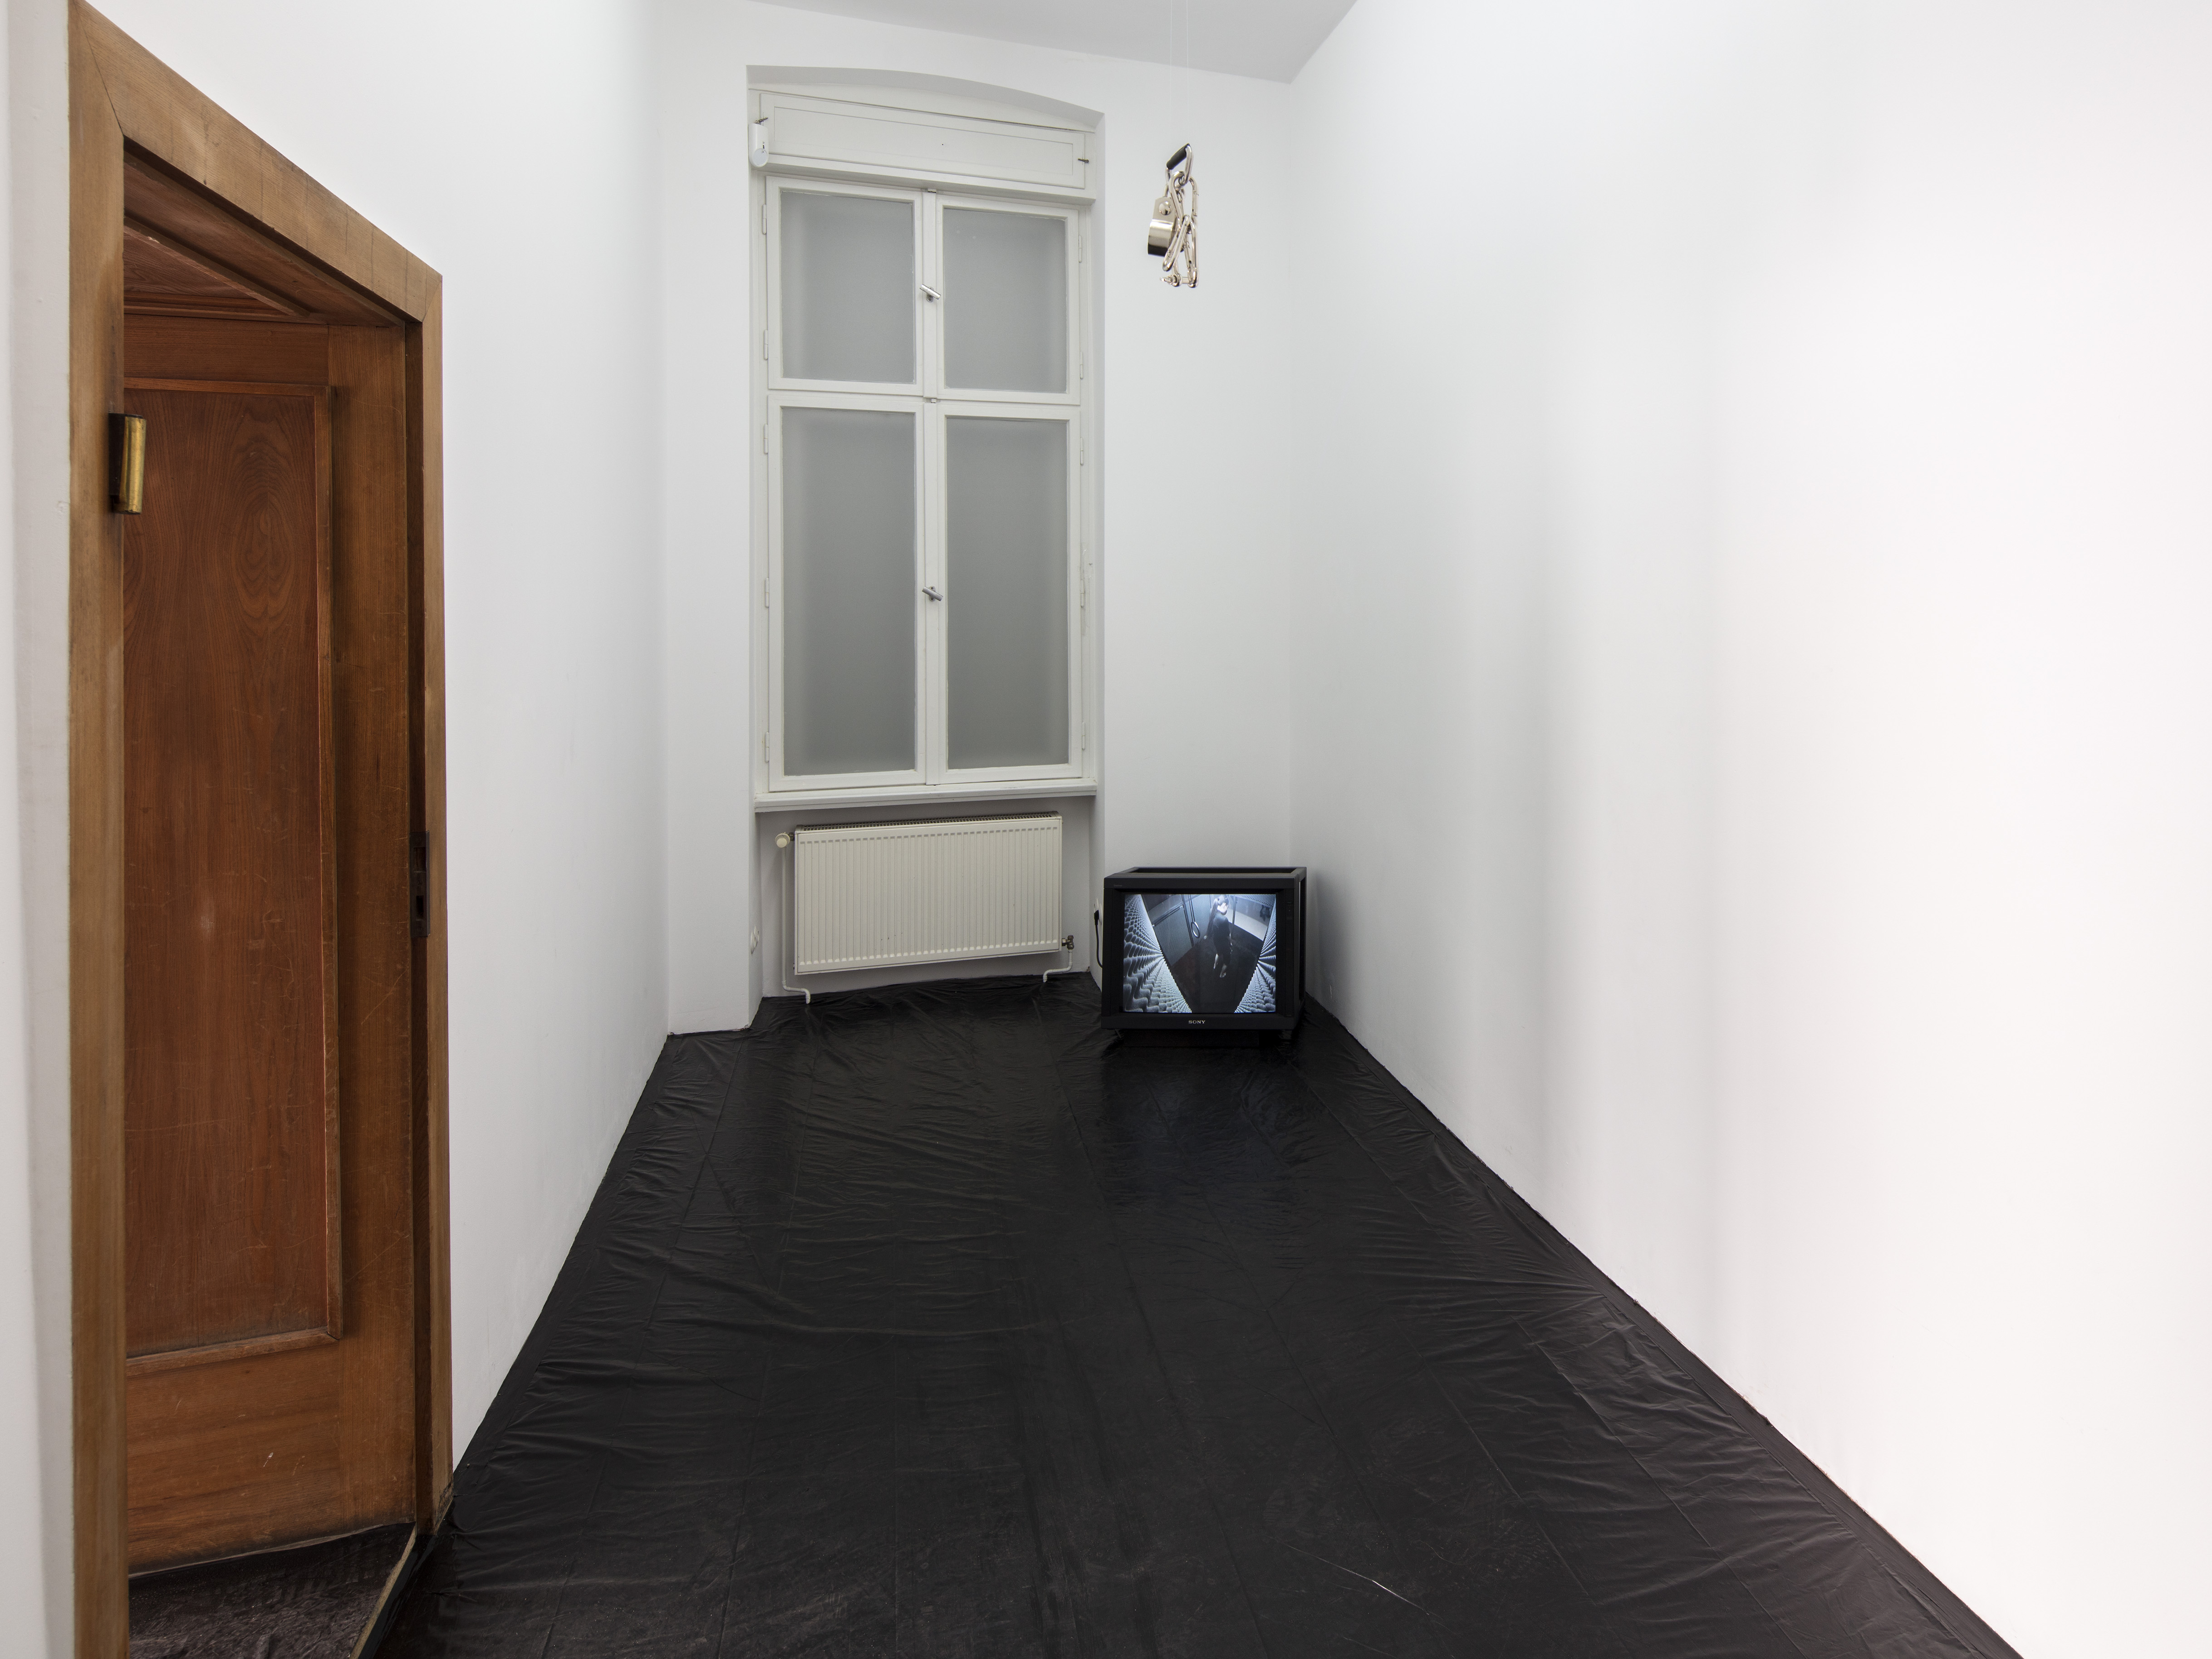 In Service Of A Song, installation view, Eden Eden, 2018